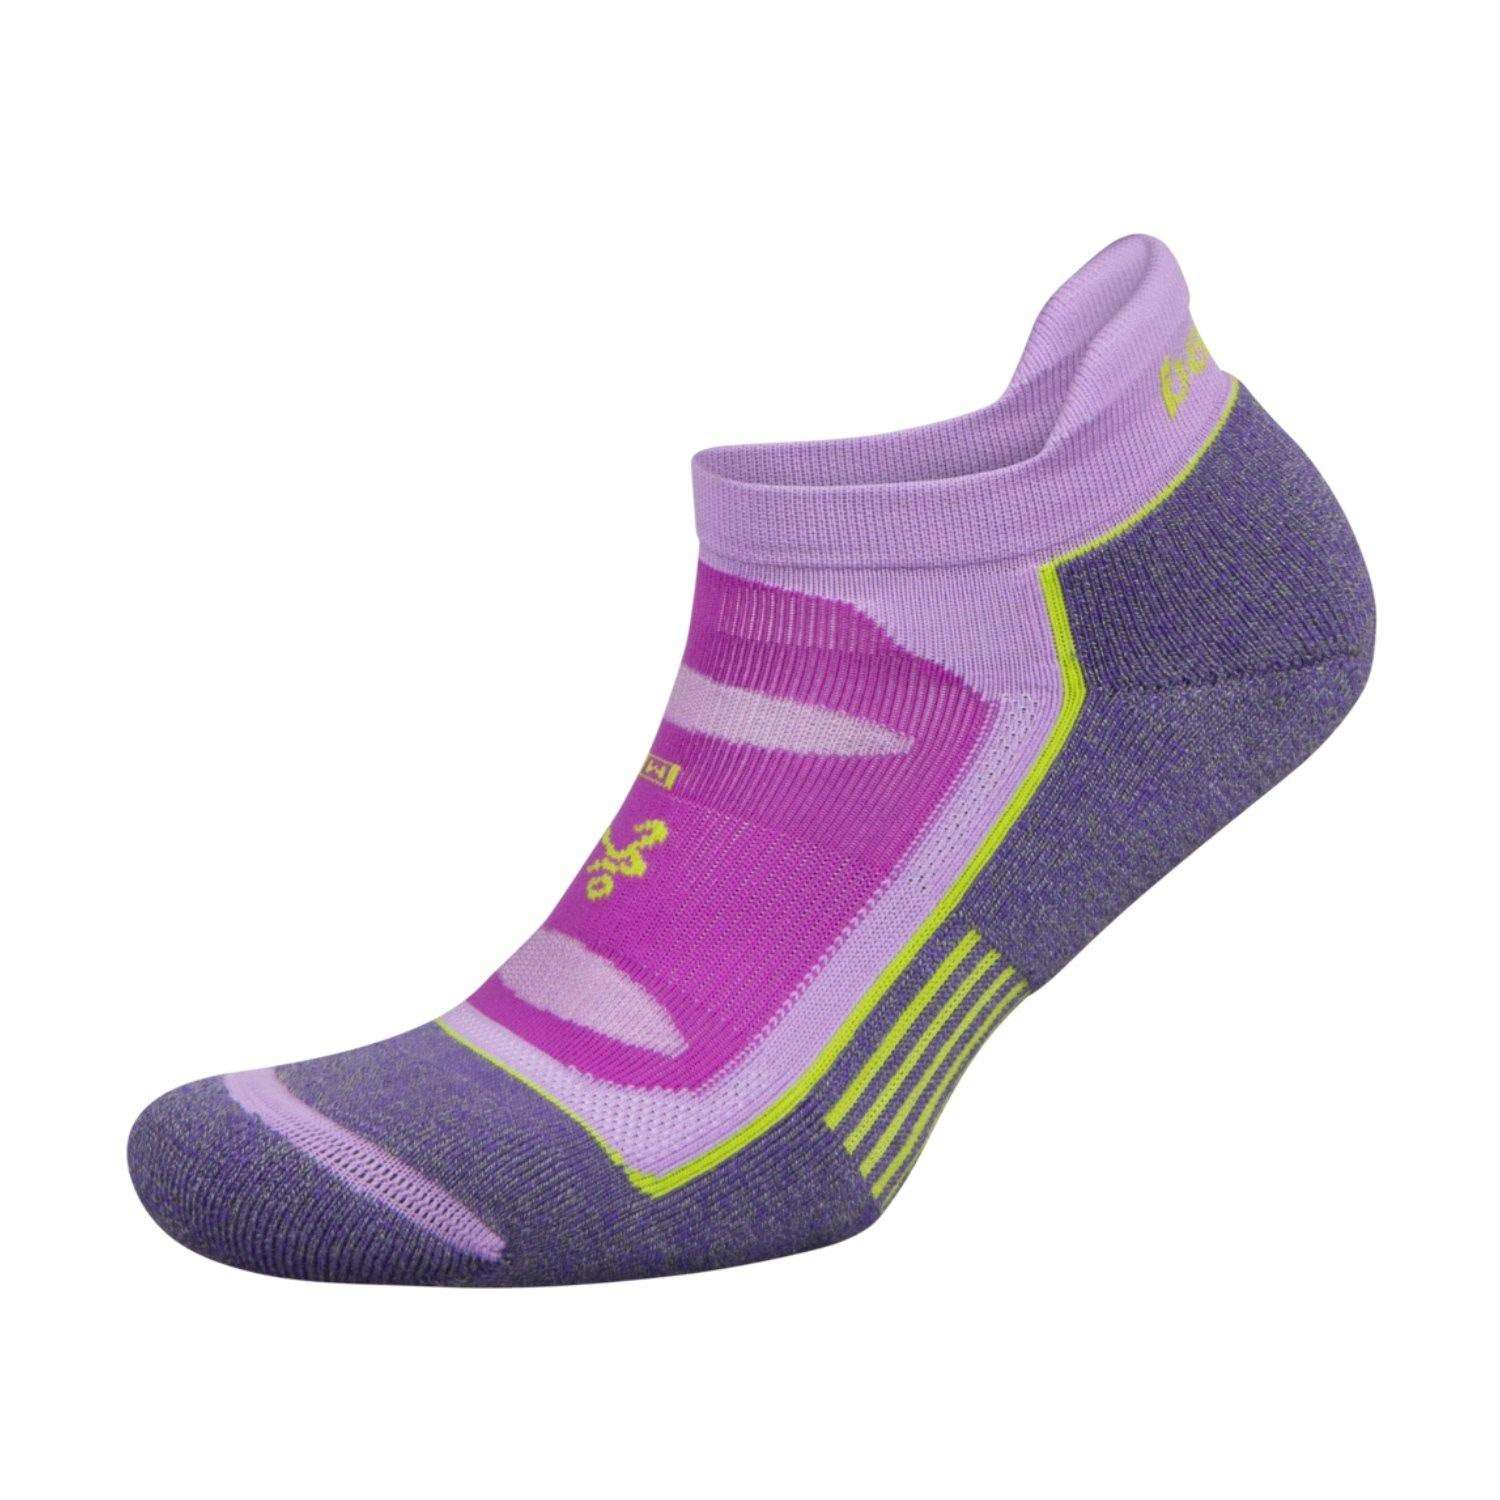 Balega Blister Resist No Show Socks - Ultra Violet/Bright Lilac